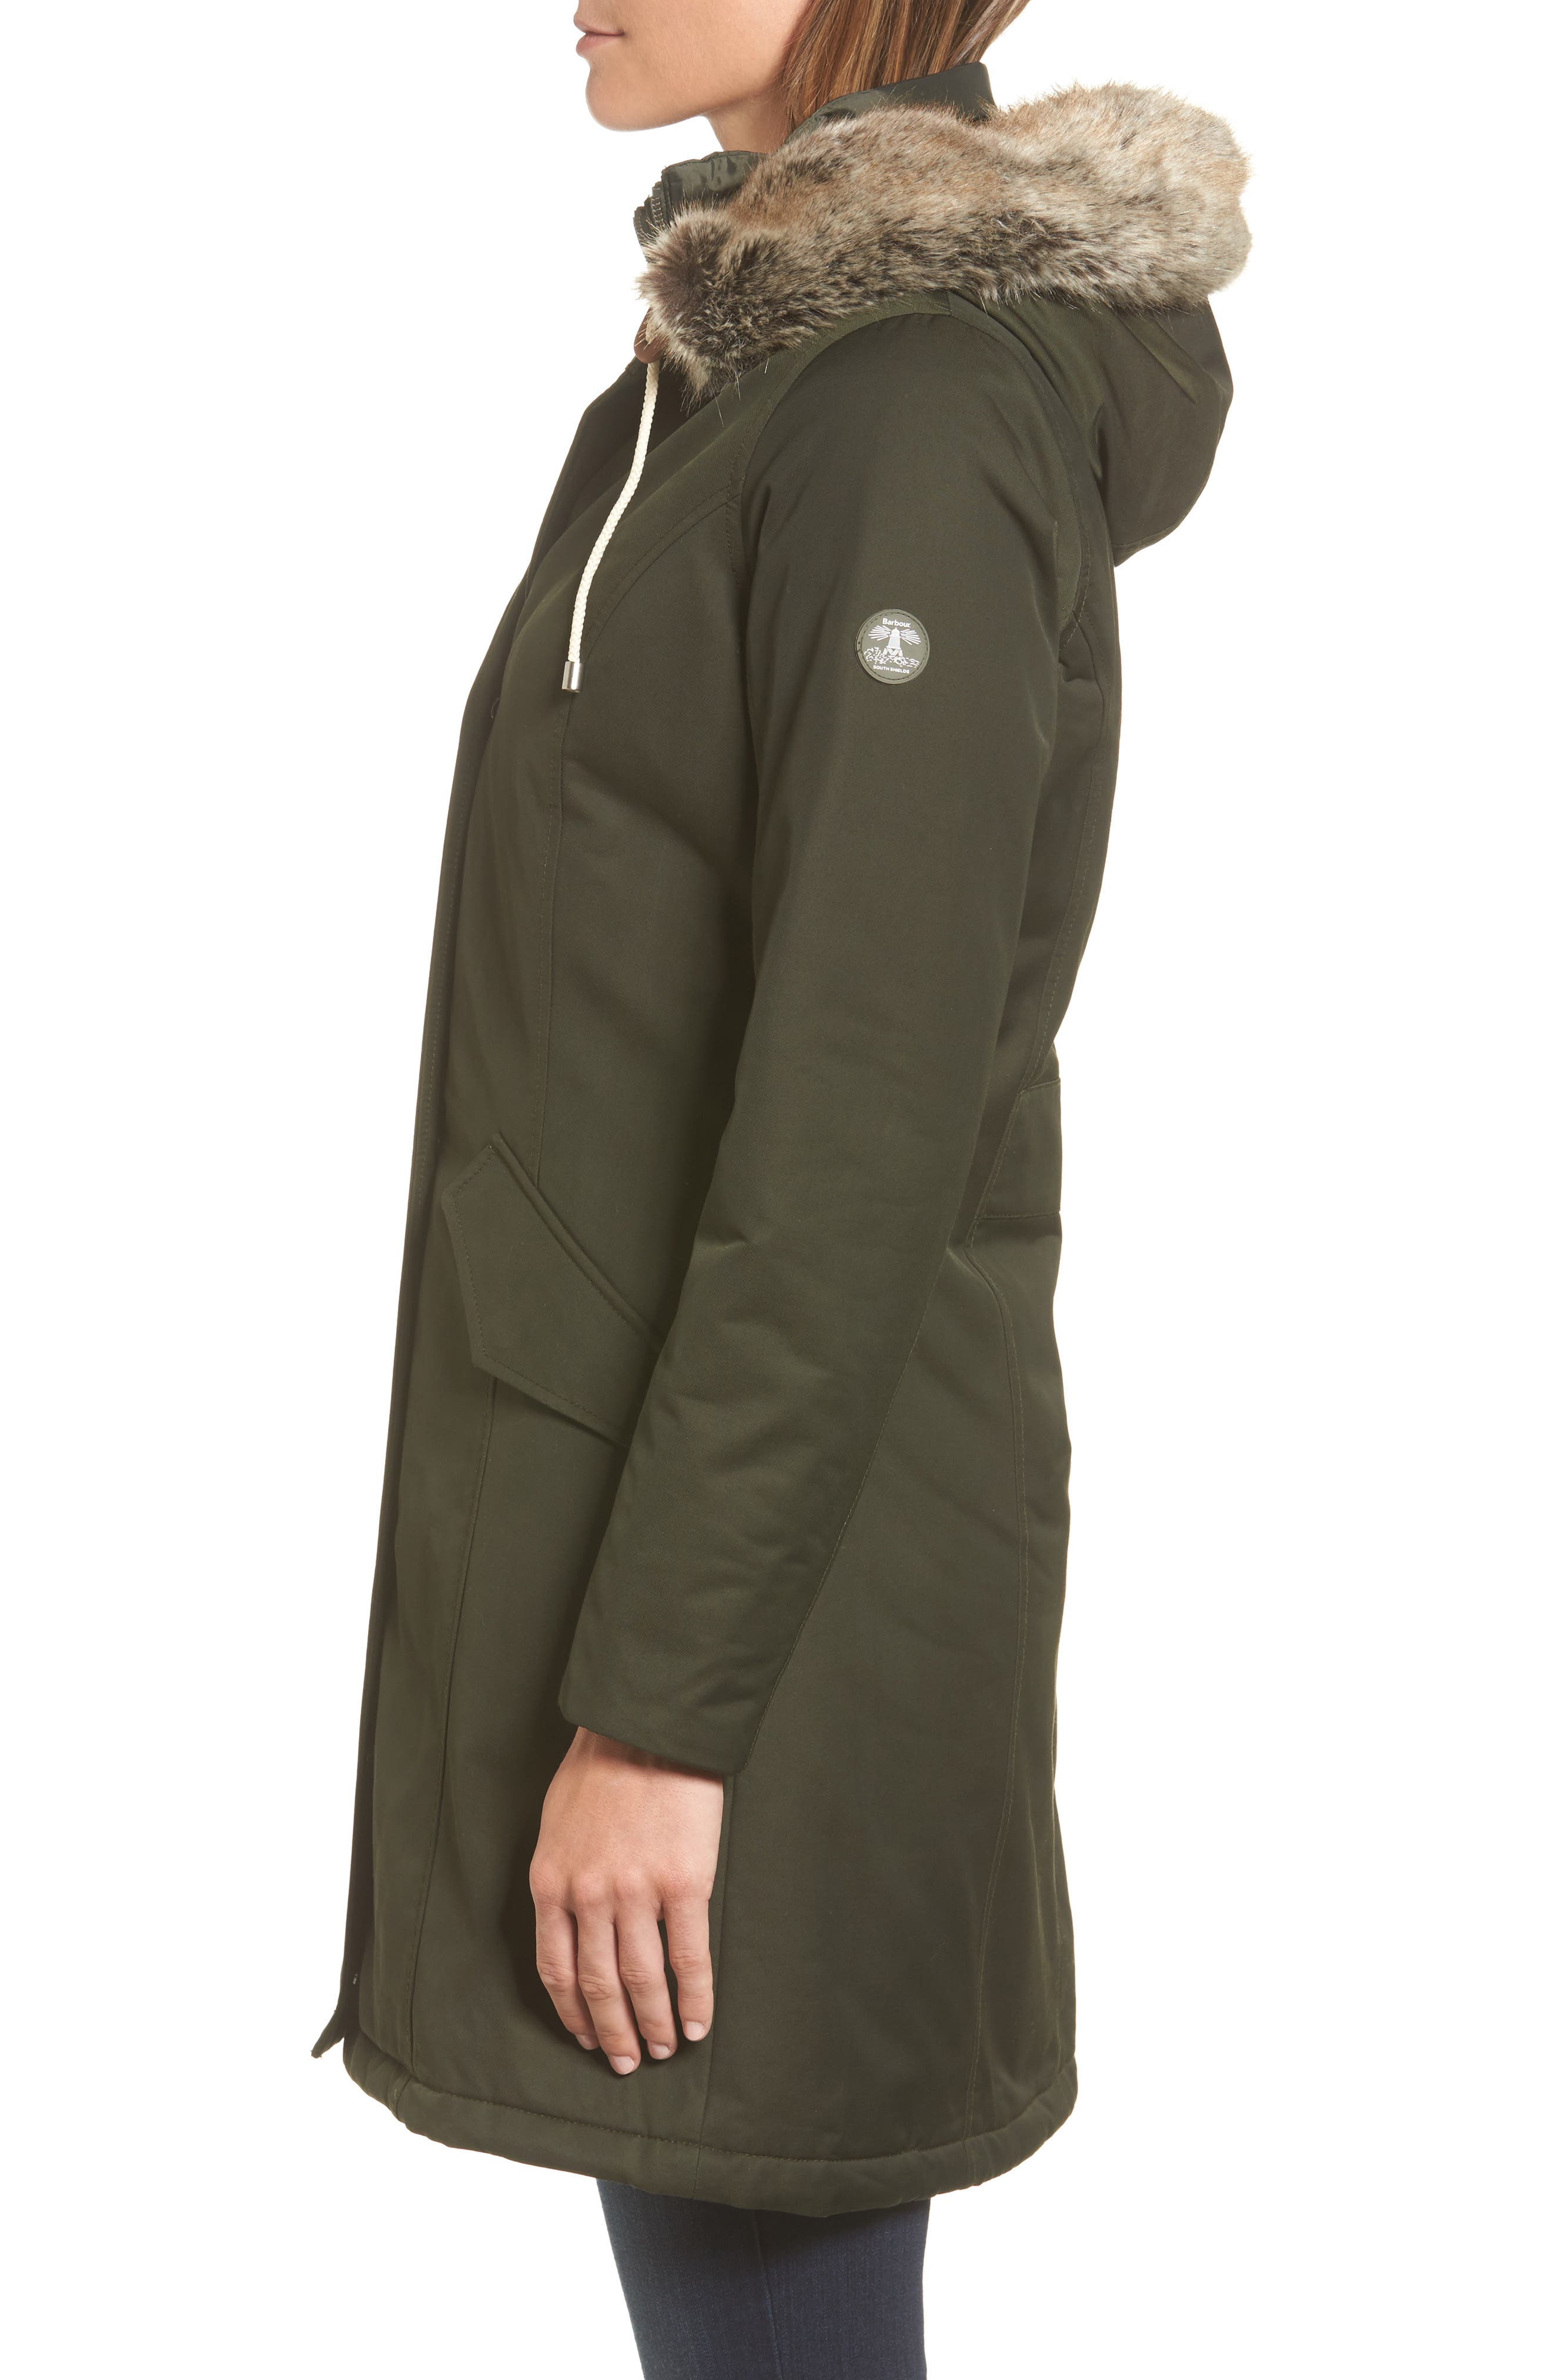 Filey Waterproof Hooded Jacket with Faux Fur Trim,                             Alternate thumbnail 3, color,                             302